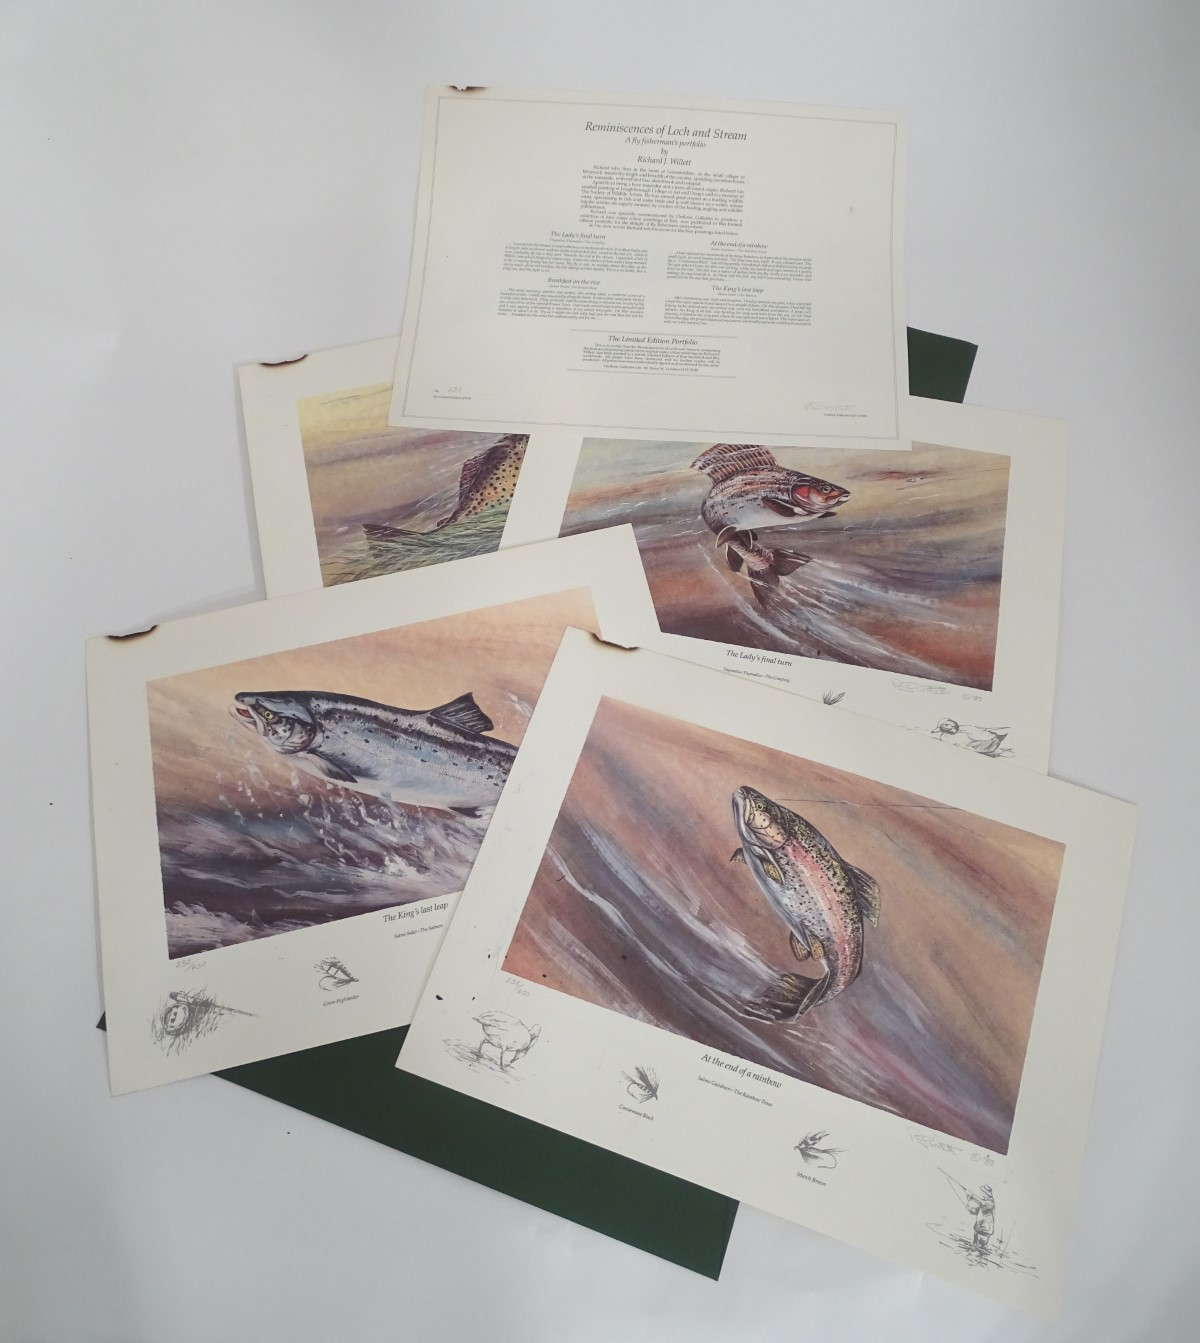 Lot 39 - After Richard J Willett, 1989, fly fishing, Signed Limited Edition Portfolio, 235/450,